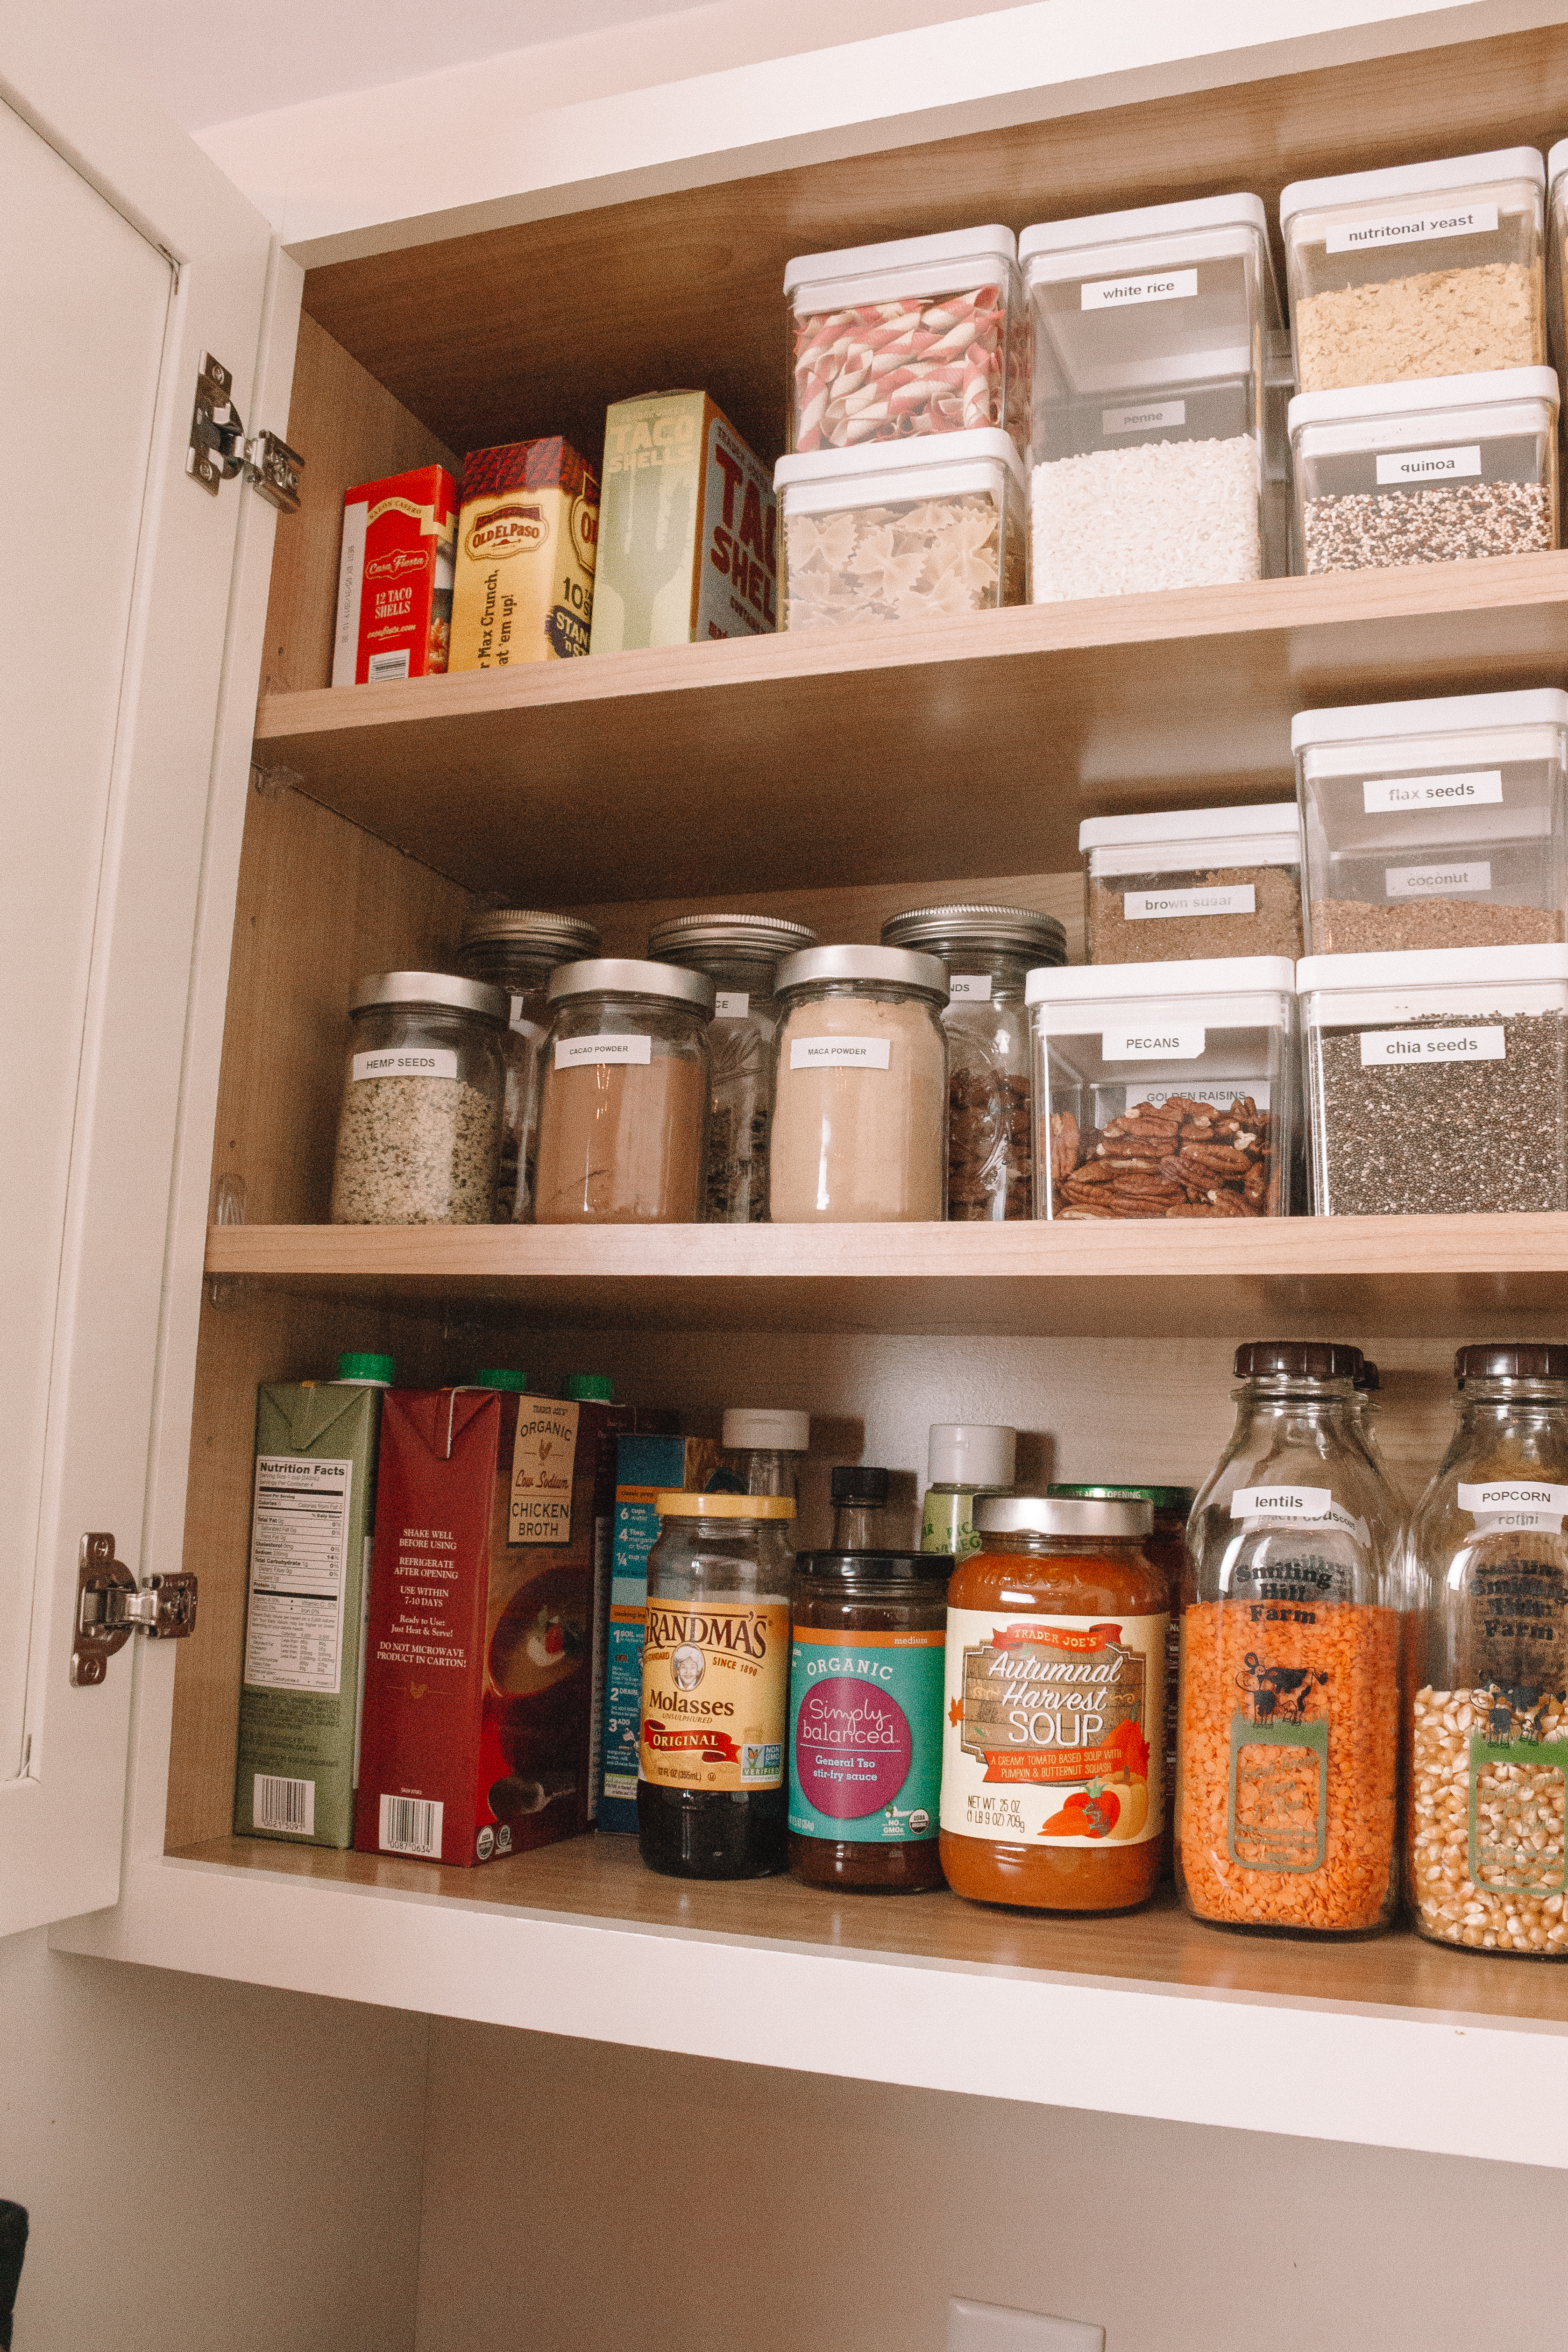 How to Organize Your Pantry in an Apartment - Small Space Storage | Hey Its Camille Grey #pantry #organization #apartment